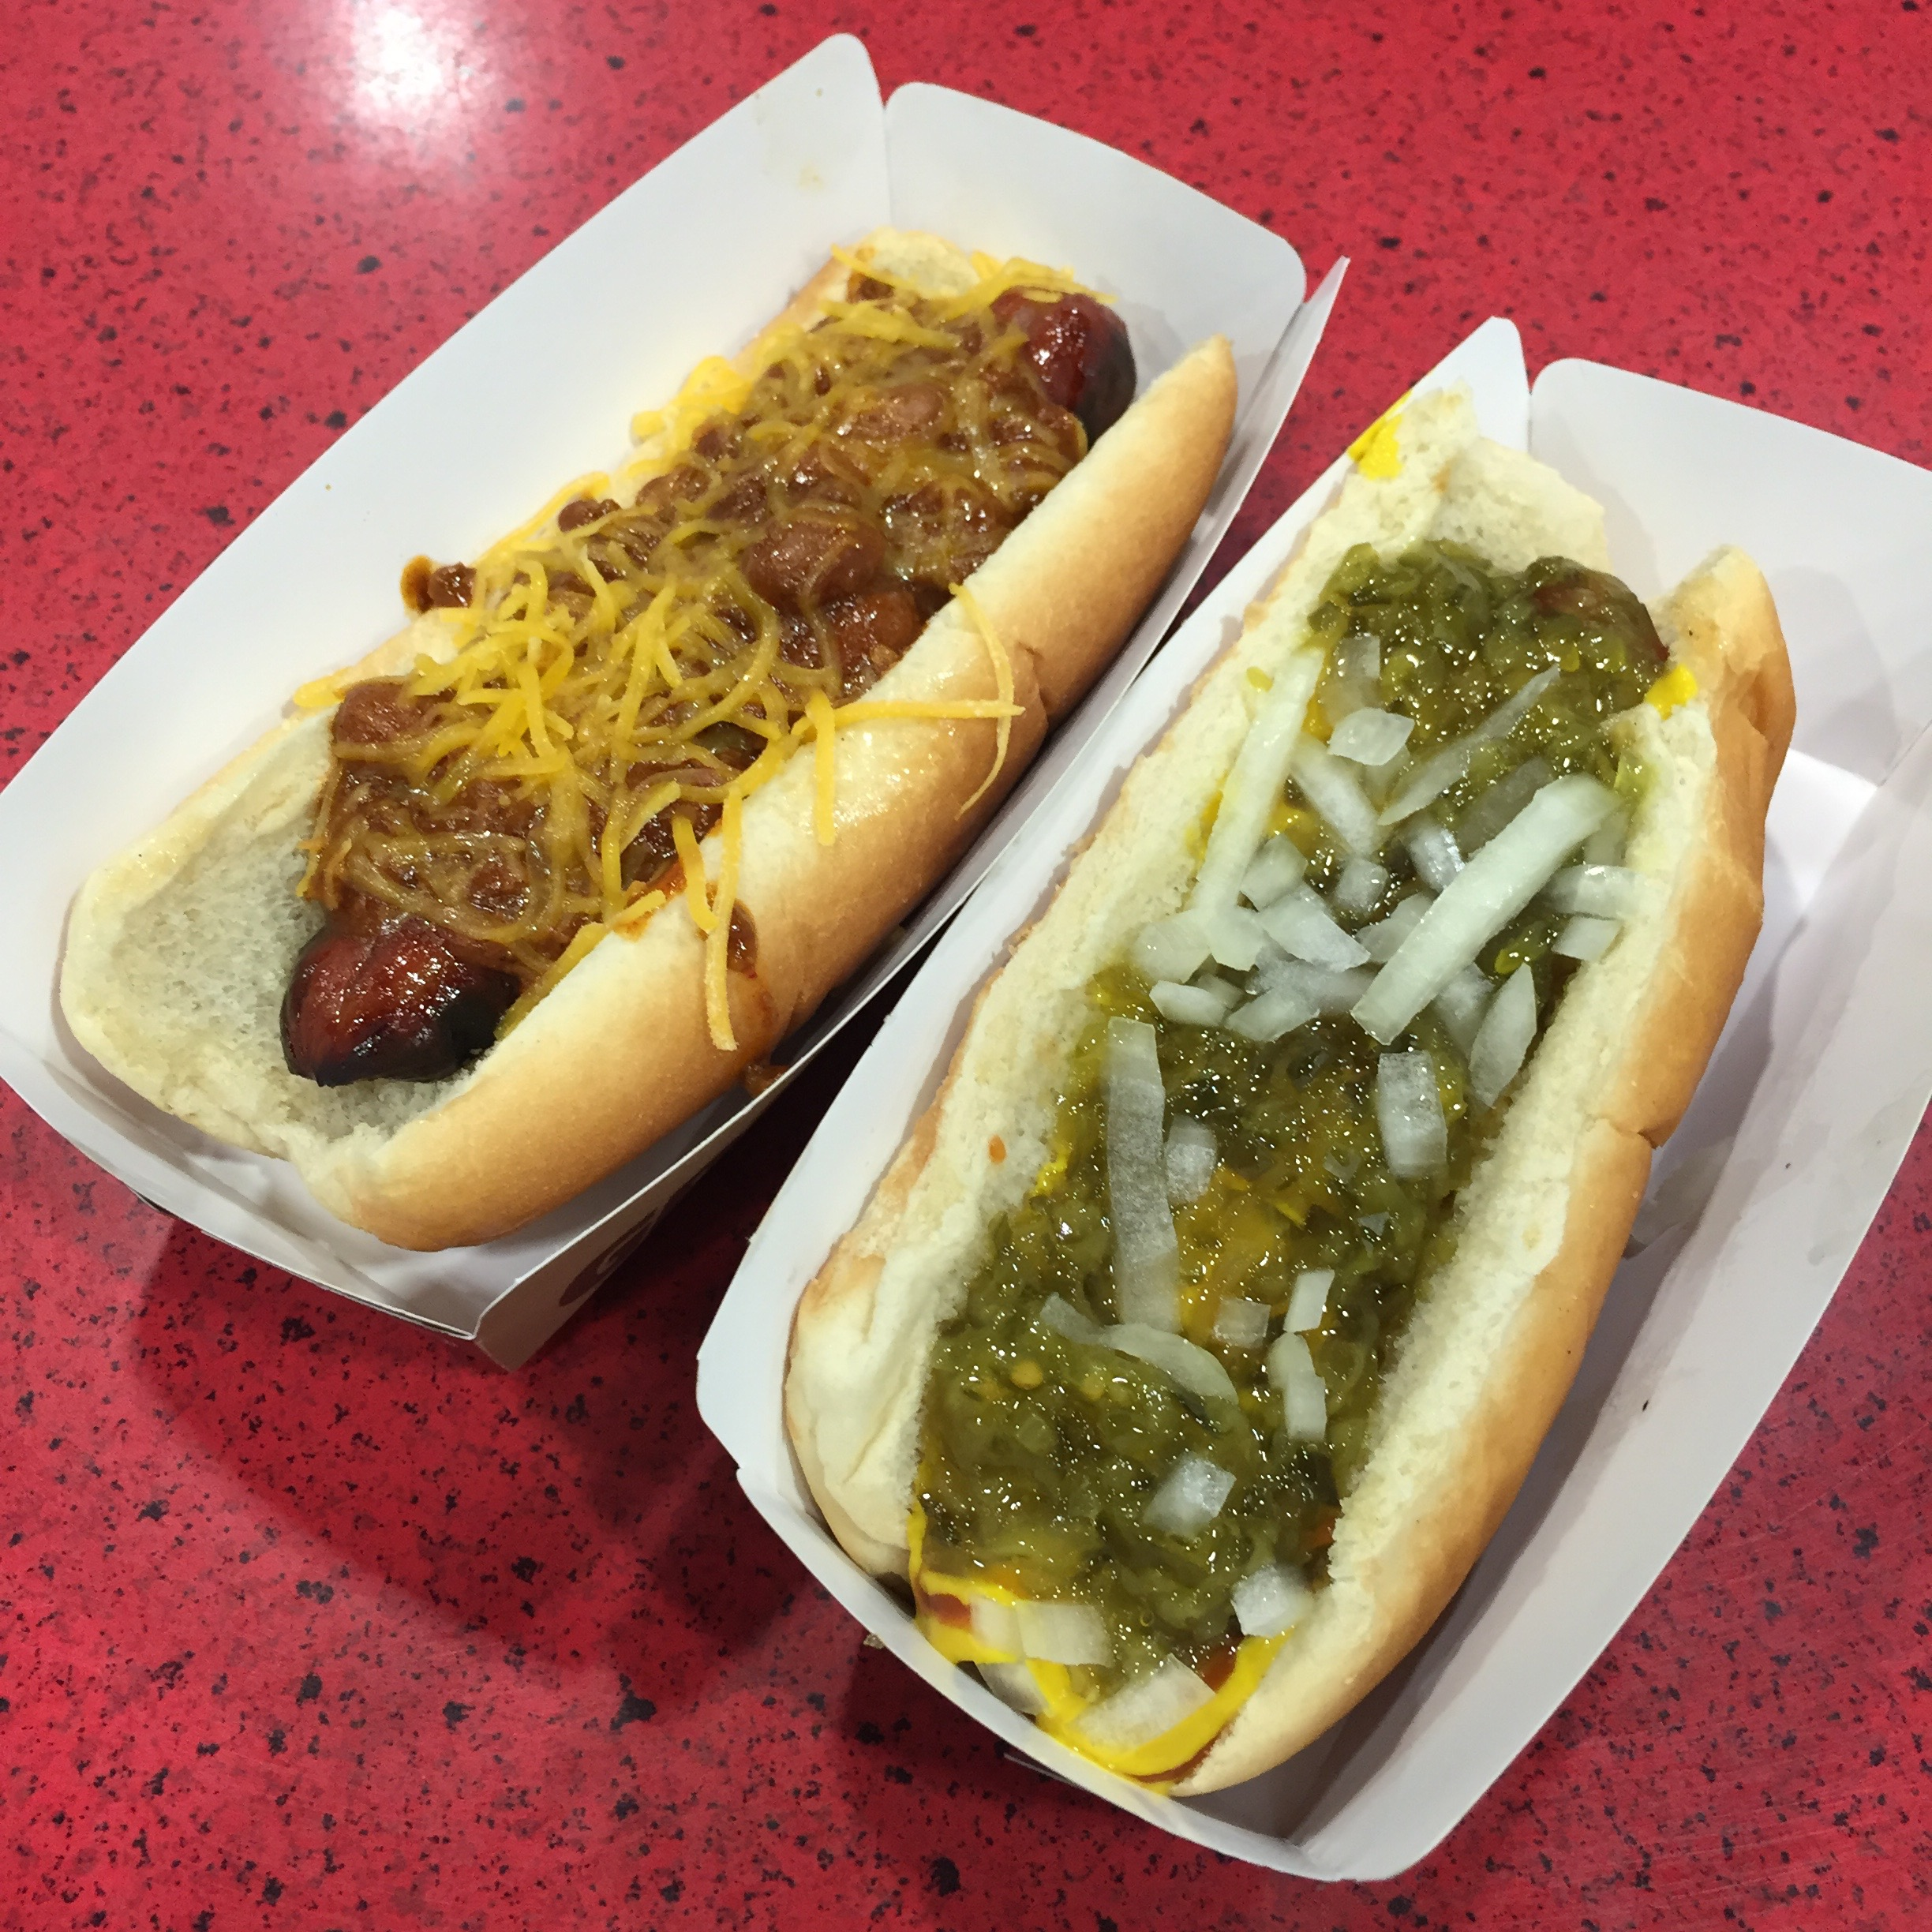 Burger King Grilled Dogs Review